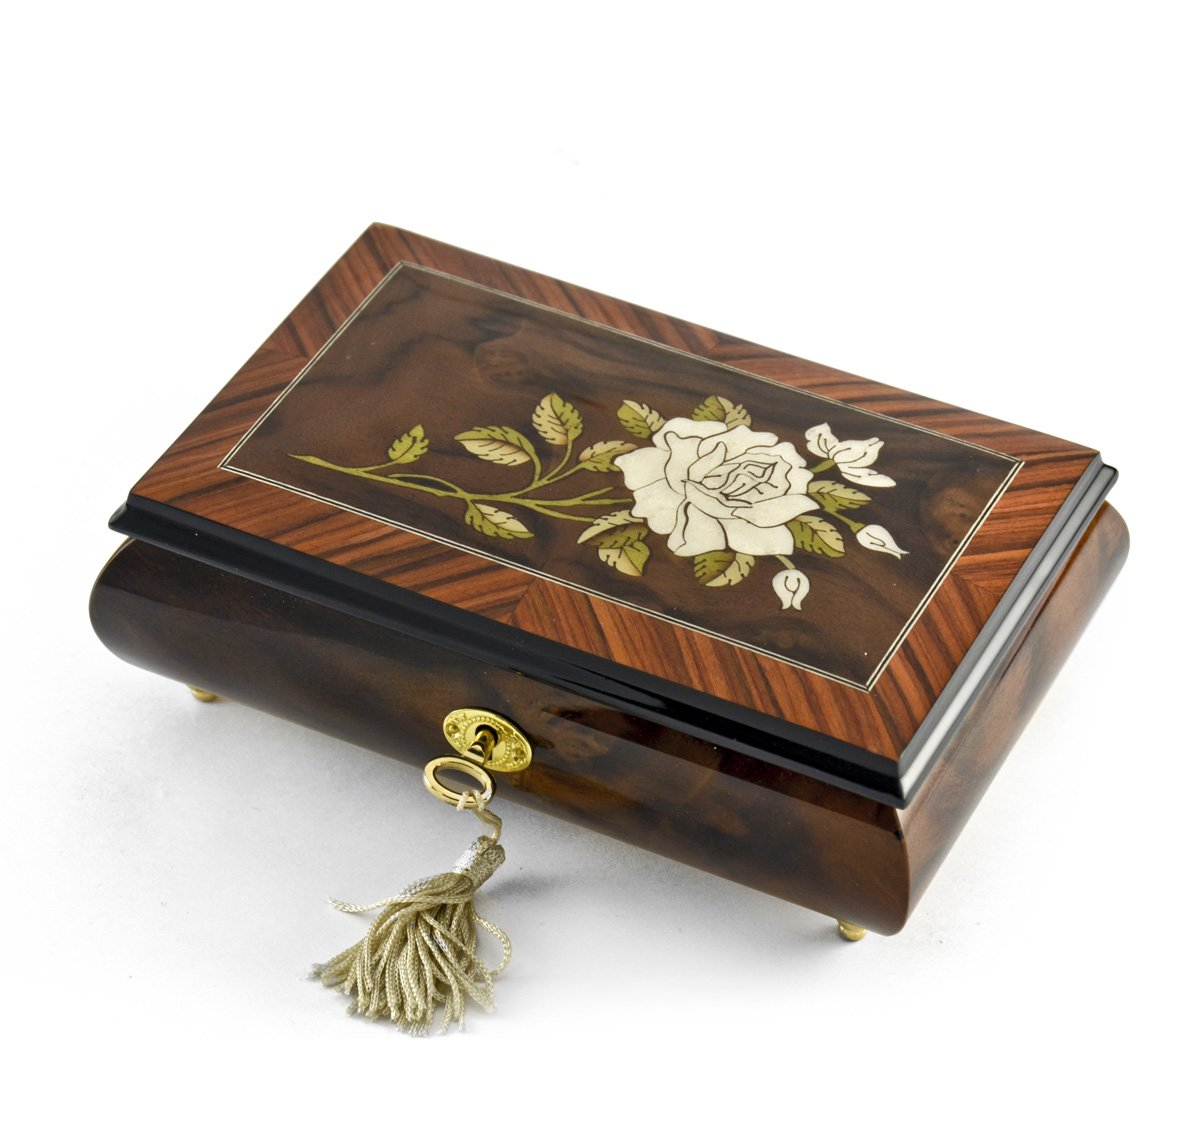 Exquisite Single Stem White Rose Musical Jewelry Box - America the Beautiful